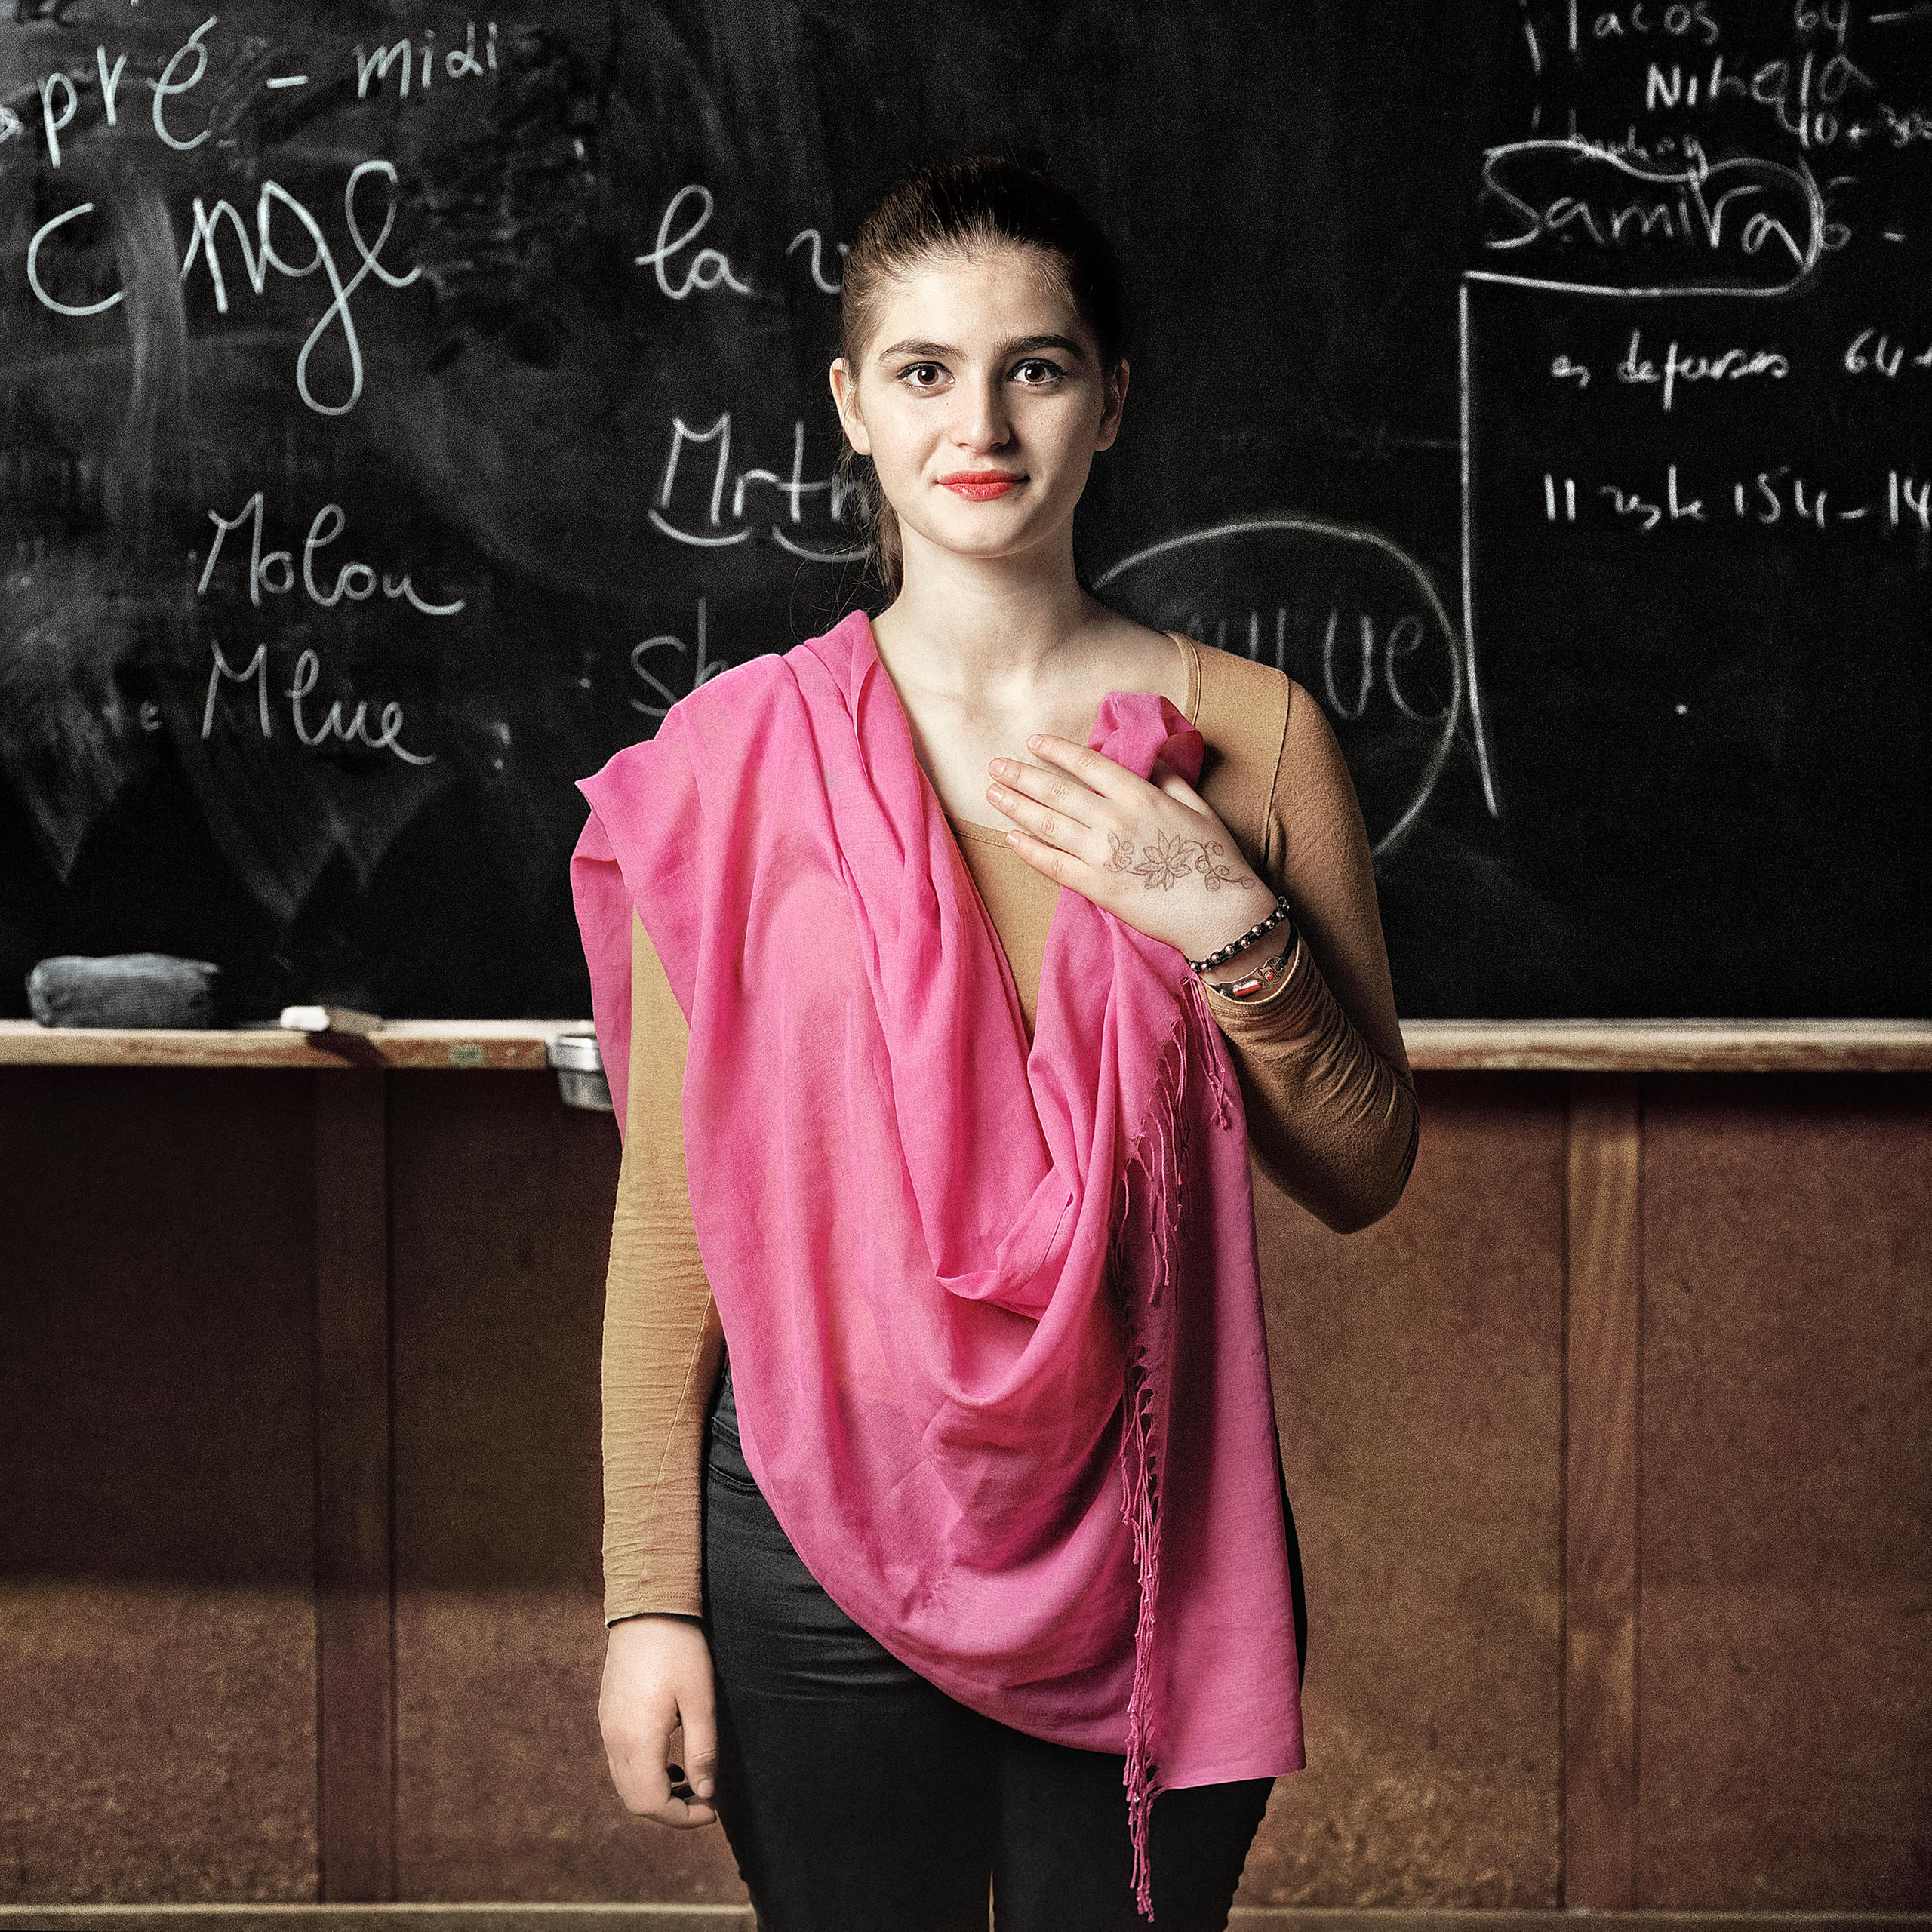 teenager stands in front of blackboard holding a pink shawl